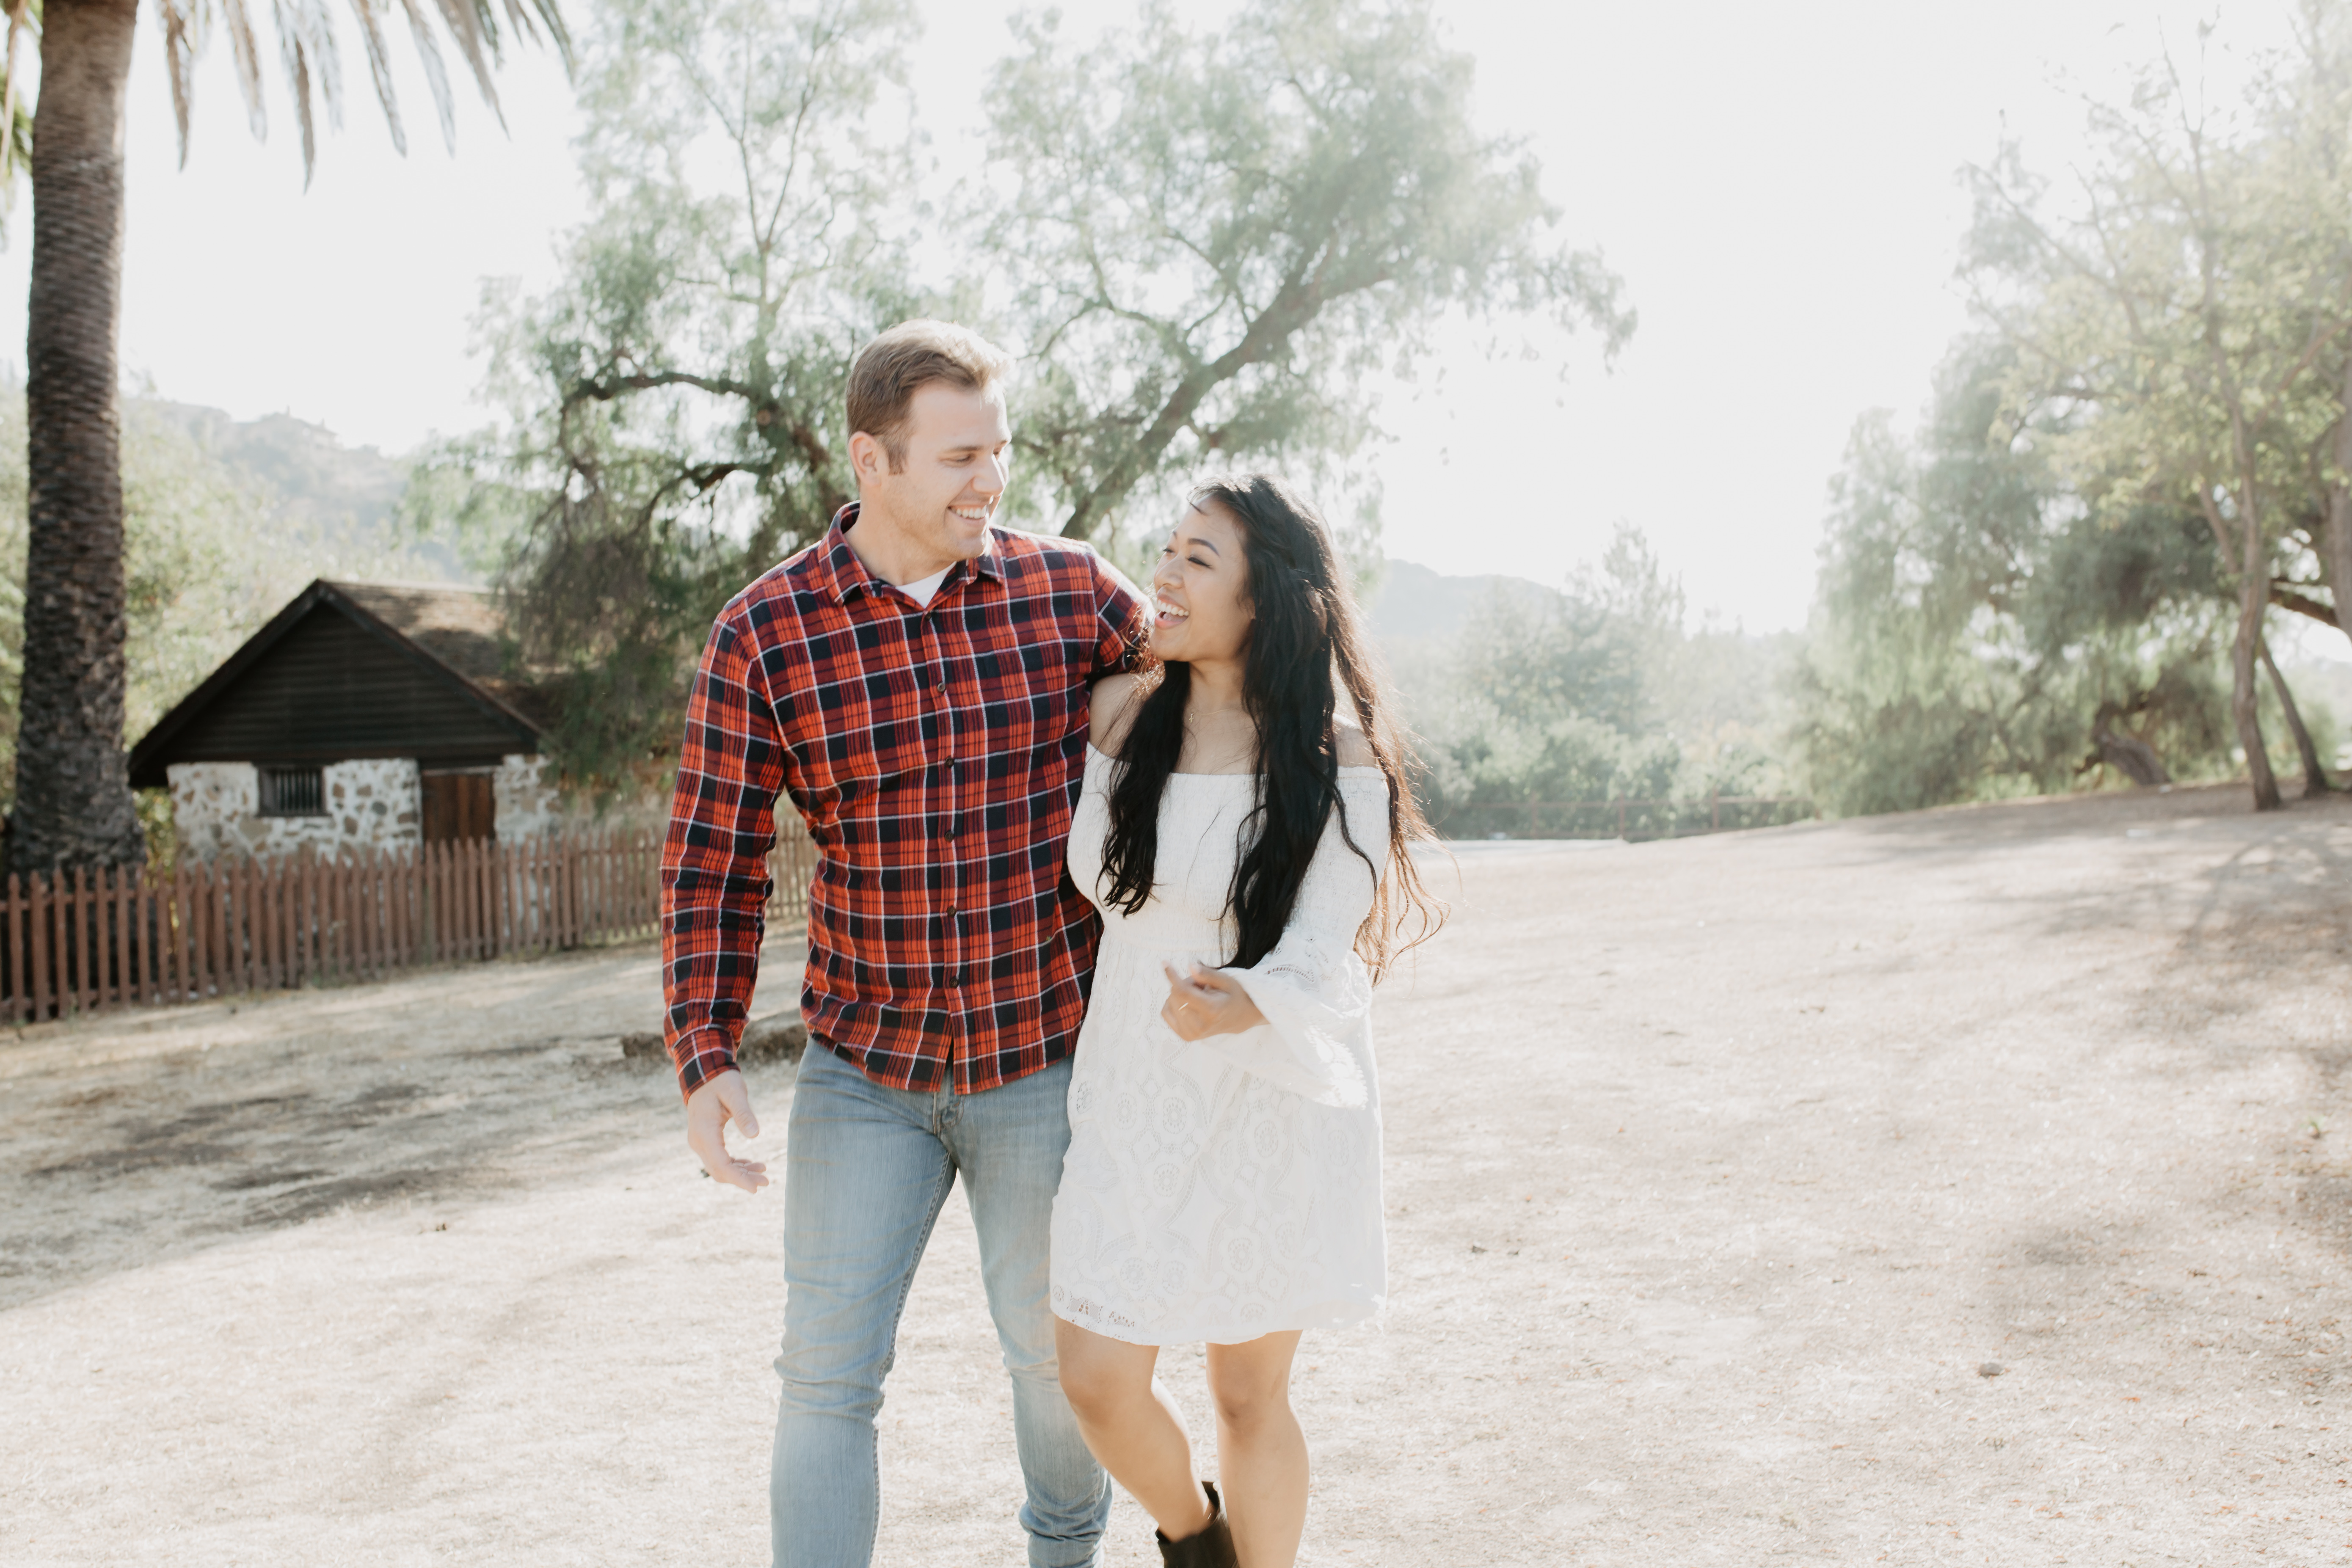 3H2A0118 3 - Lei and Matthew | Engaged | San Diego wedding photographer